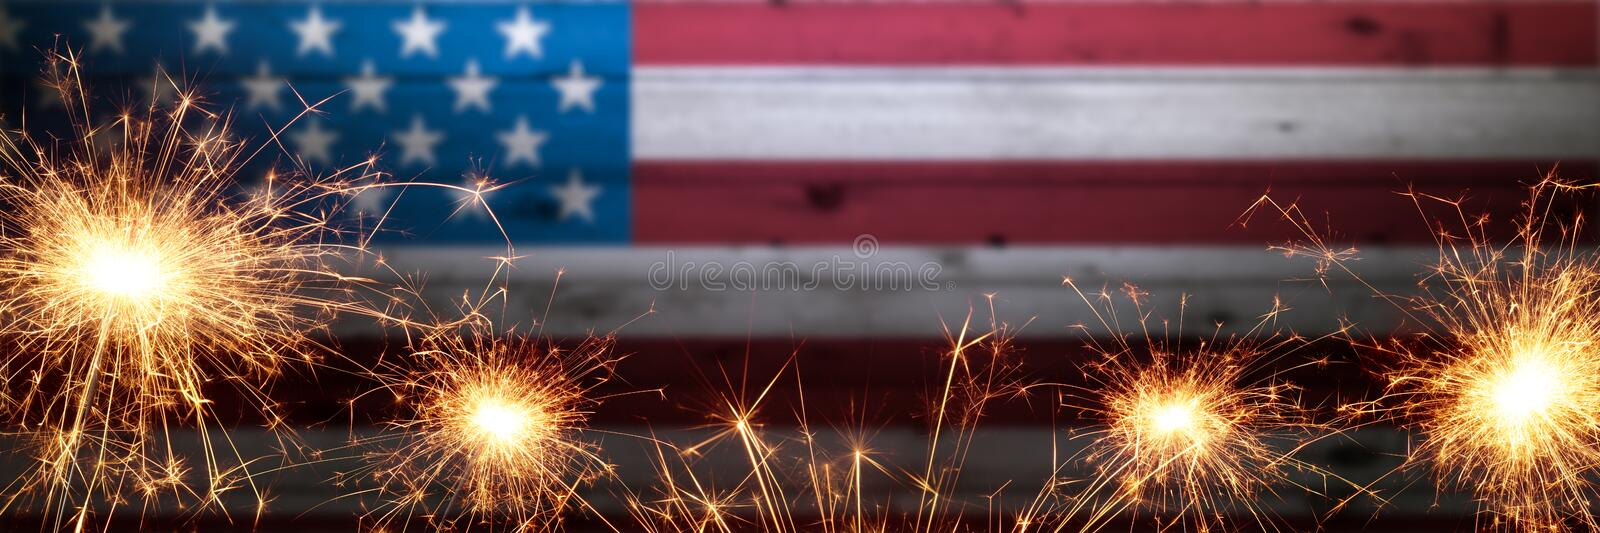 Vintage Wooden American Flag royalty free stock photo